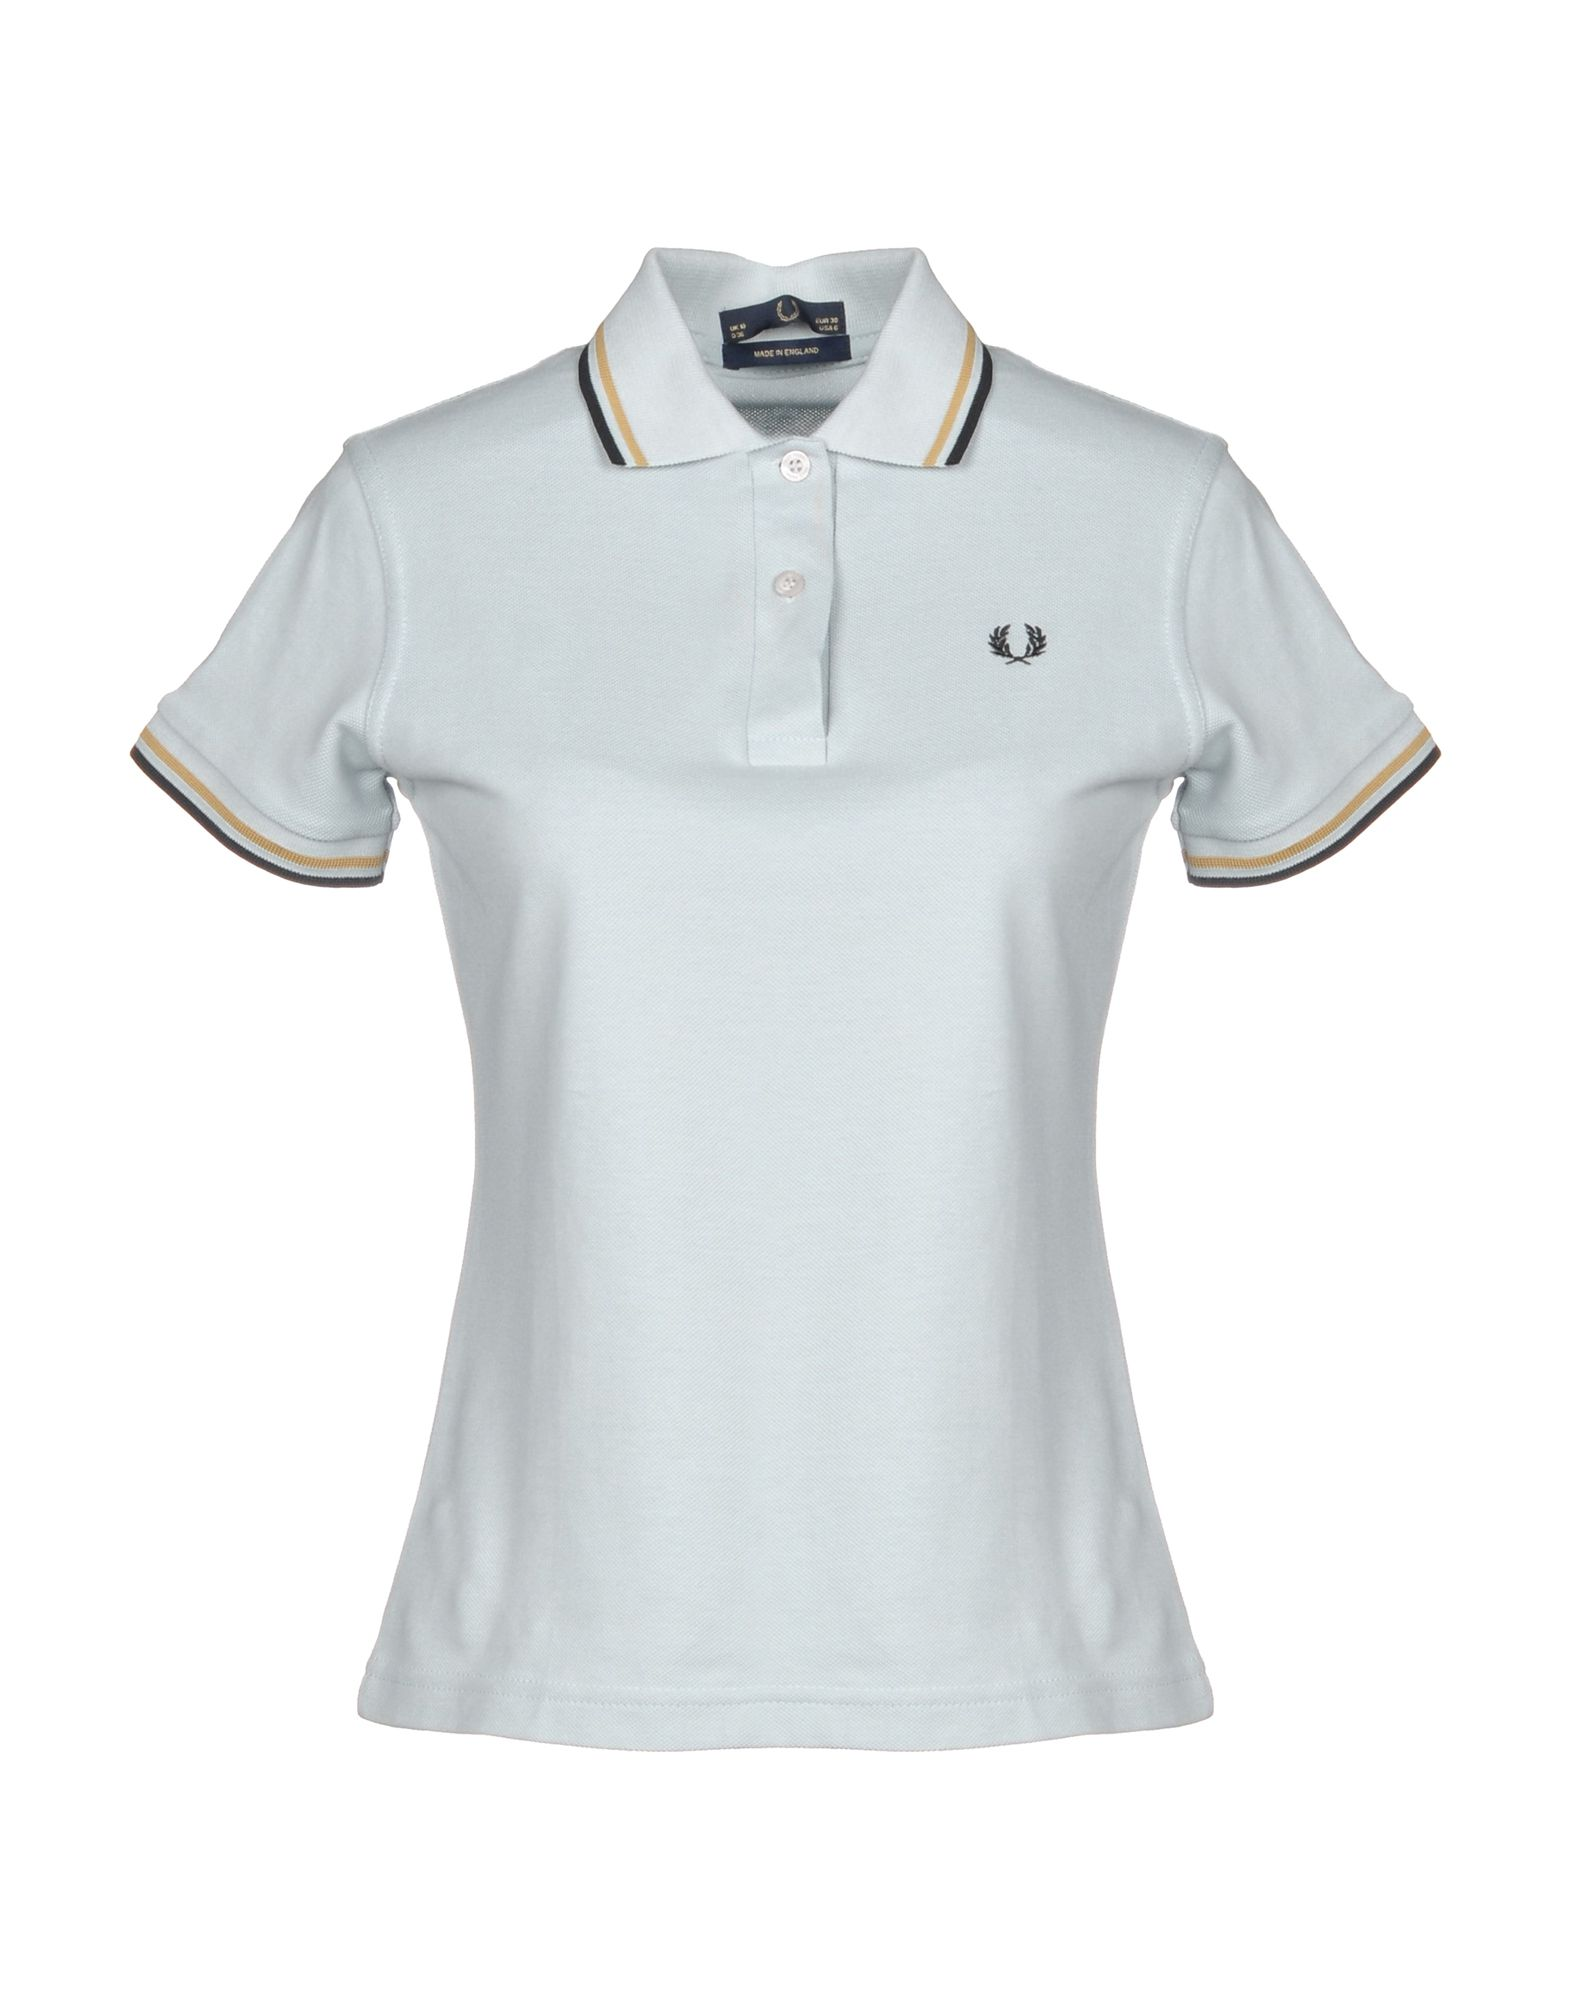 ФОТО fred perry Поло